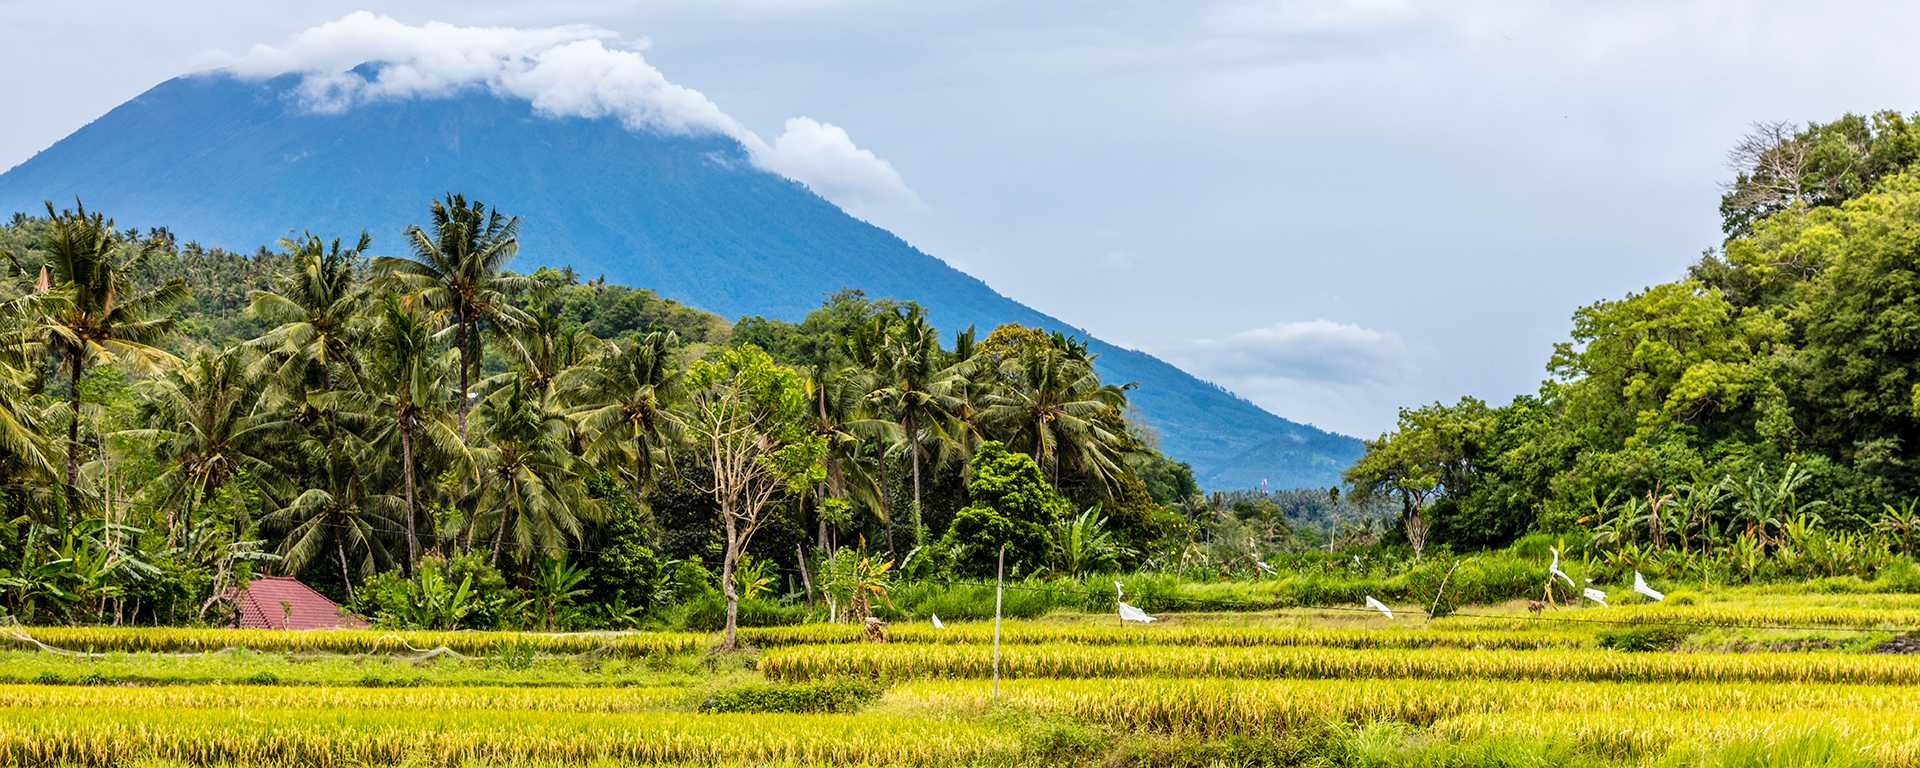 Bali Mount Agung with rice field